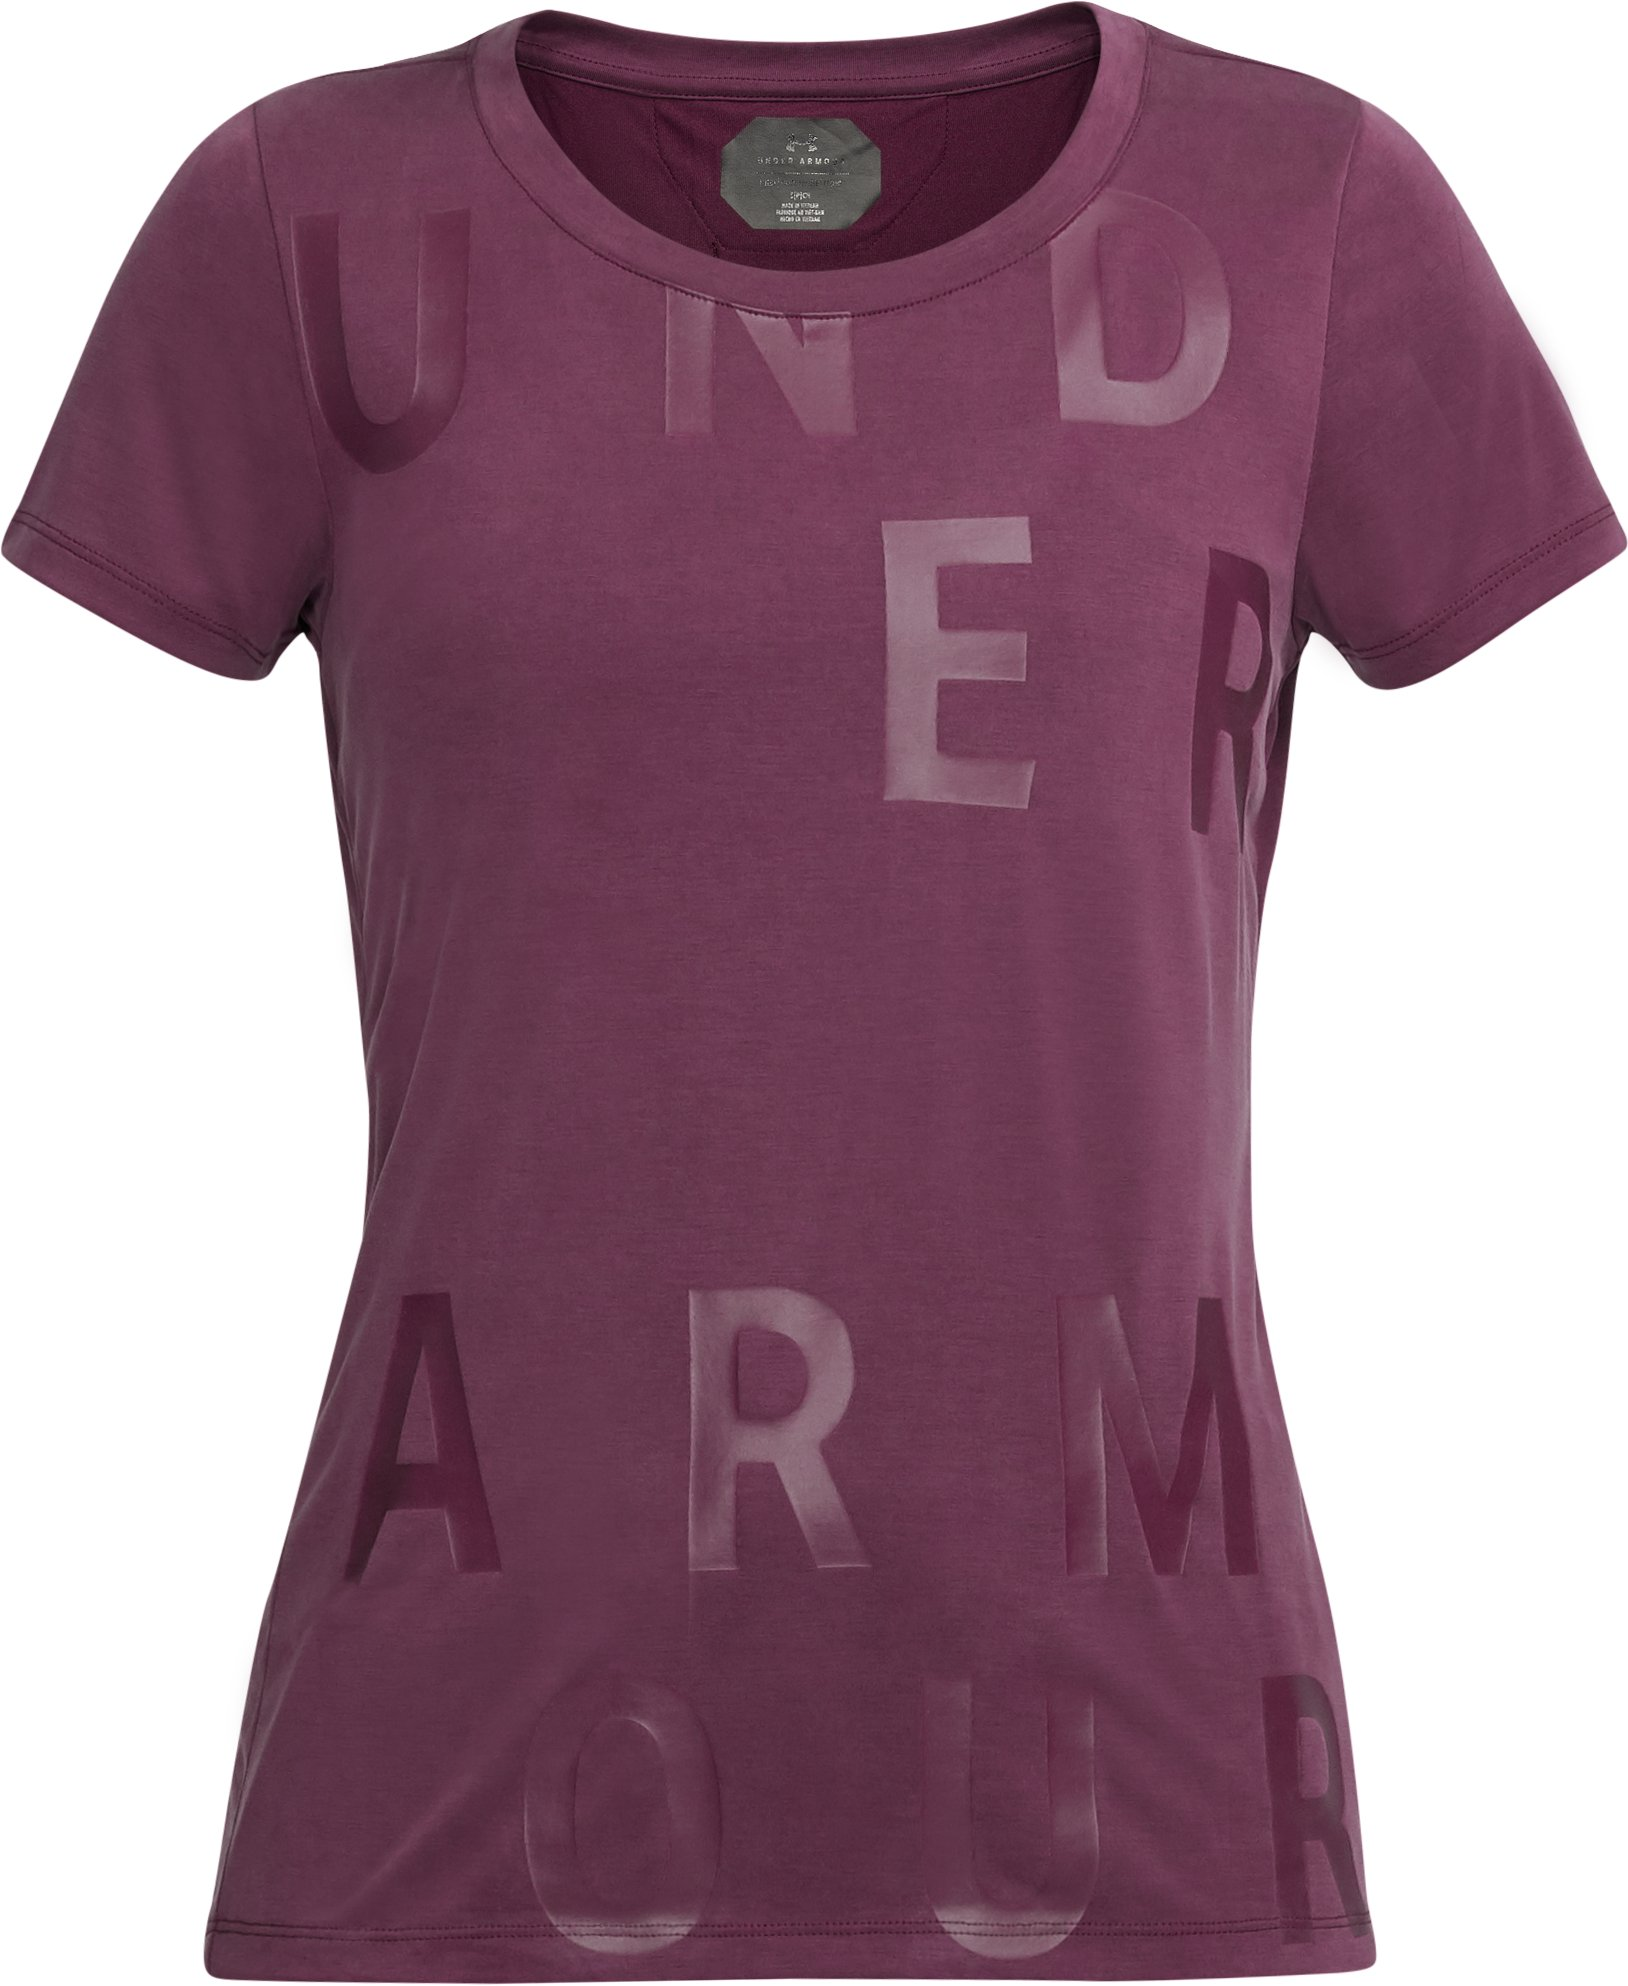 Women's UA Unstoppable Graphic T-Shirt, PURPLE SORBET, undefined